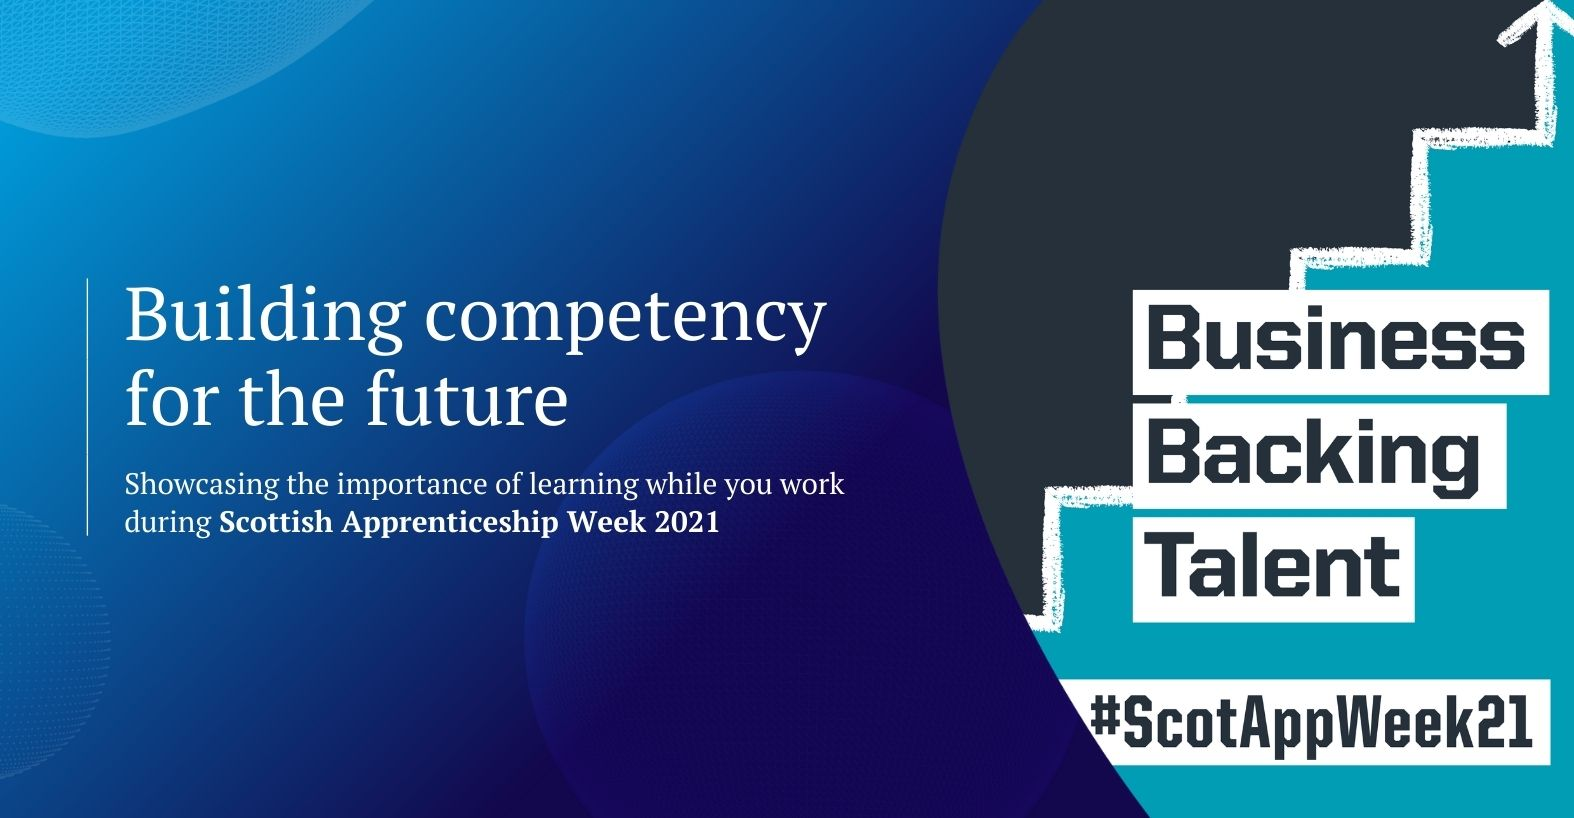 Building competency for the future: showcasing the importance of learning while you work during Scottish Apprenticeship Week 2021